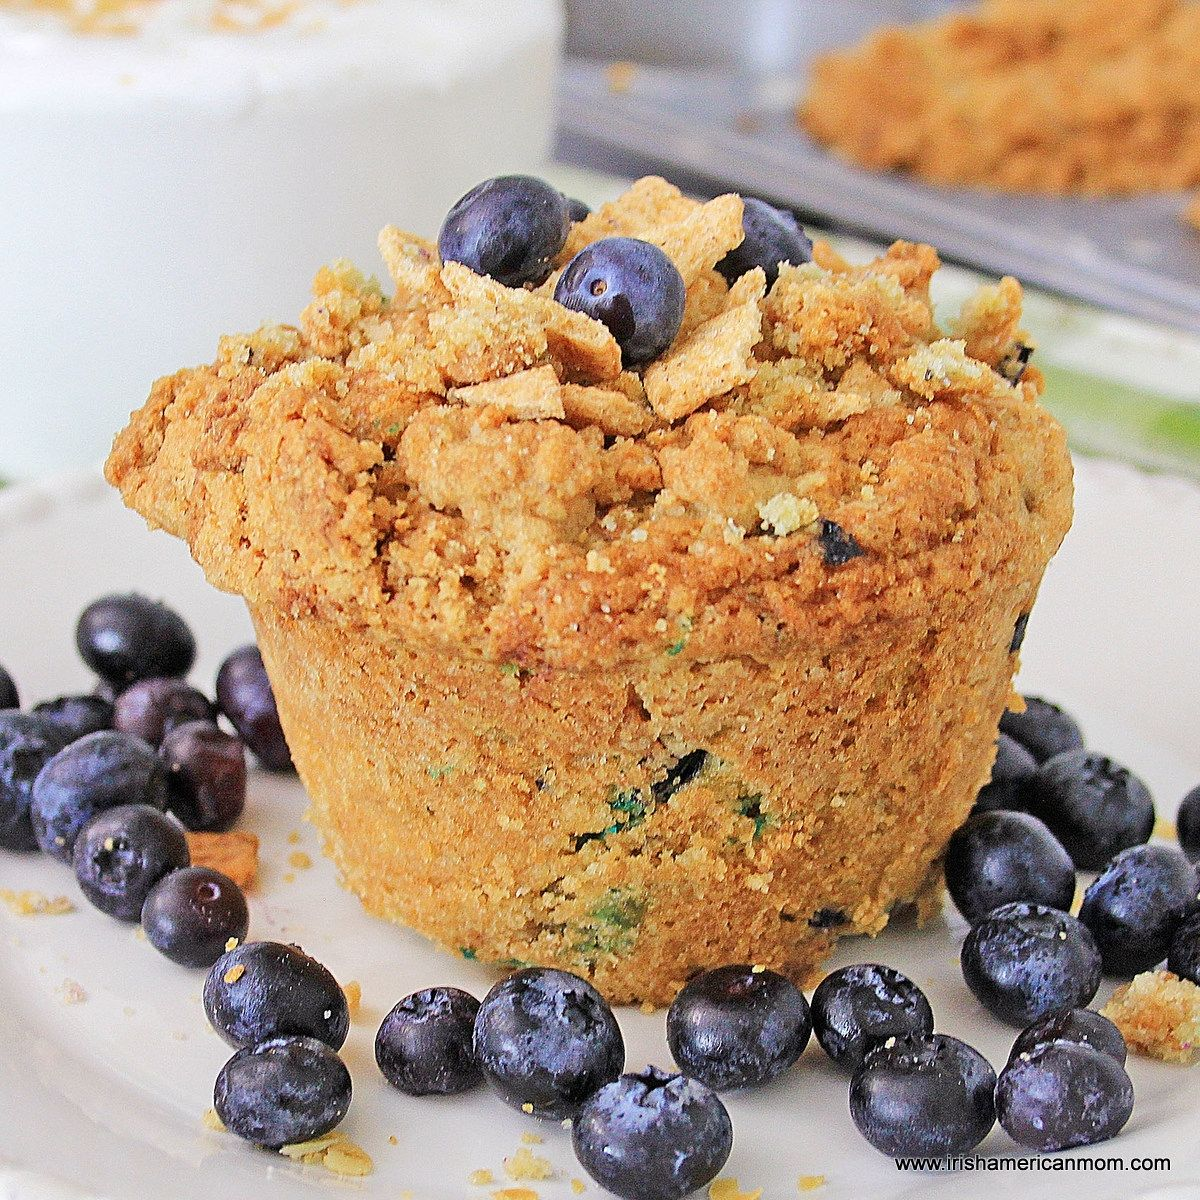 A jumbo sized blueberry muffin with streusel on a plate surrounded by blueberries